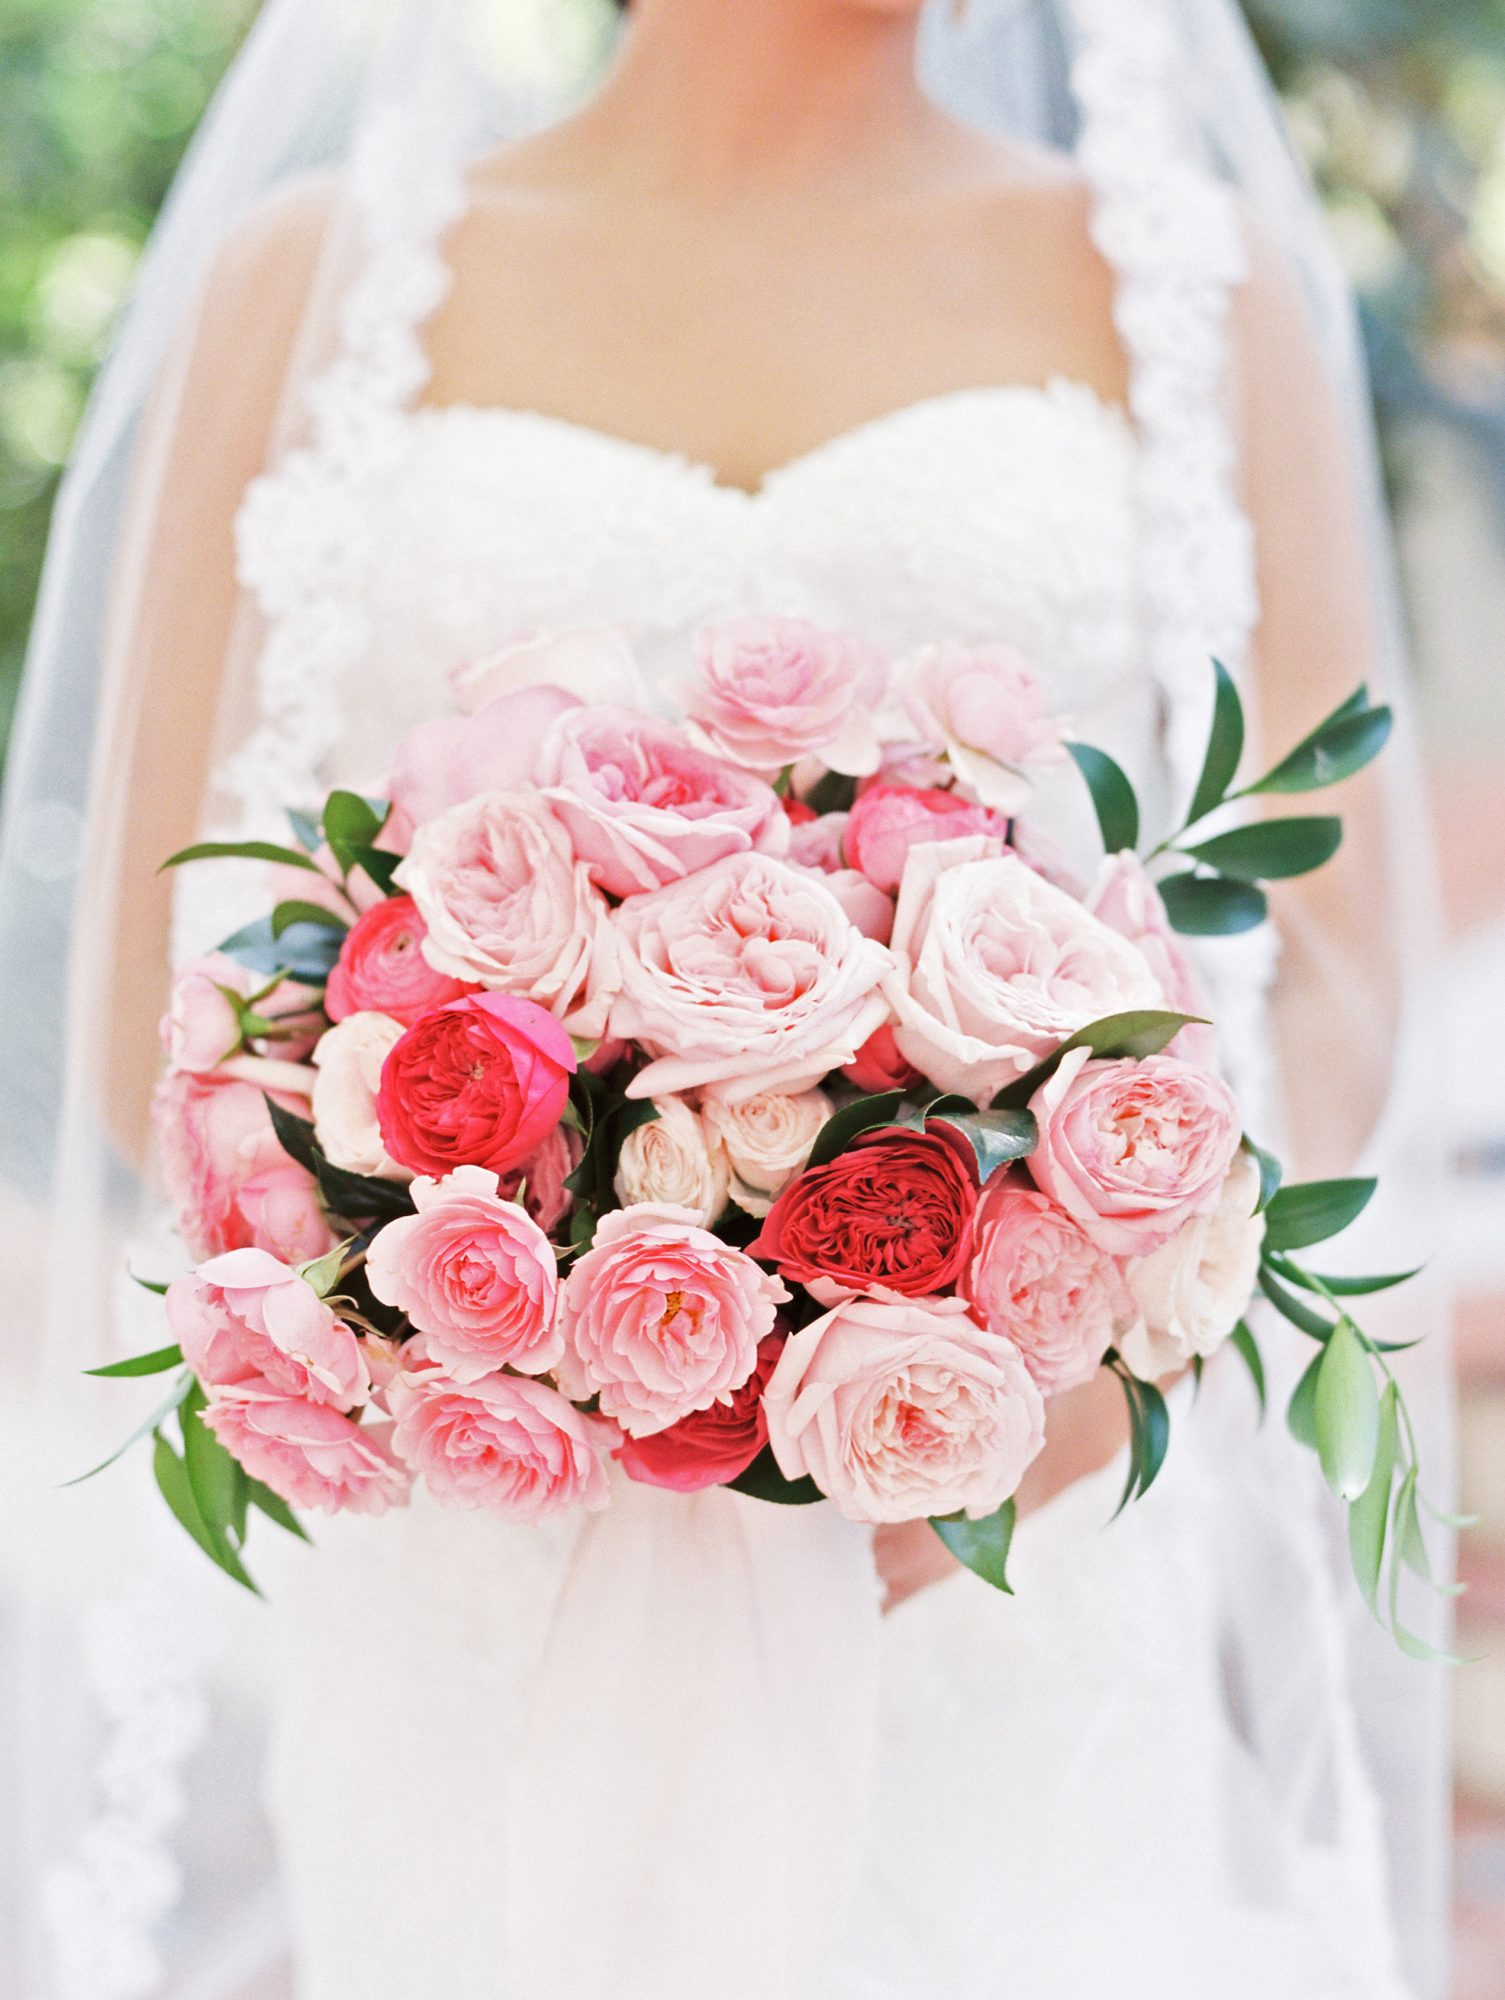 red-and-pink wedding bouquet